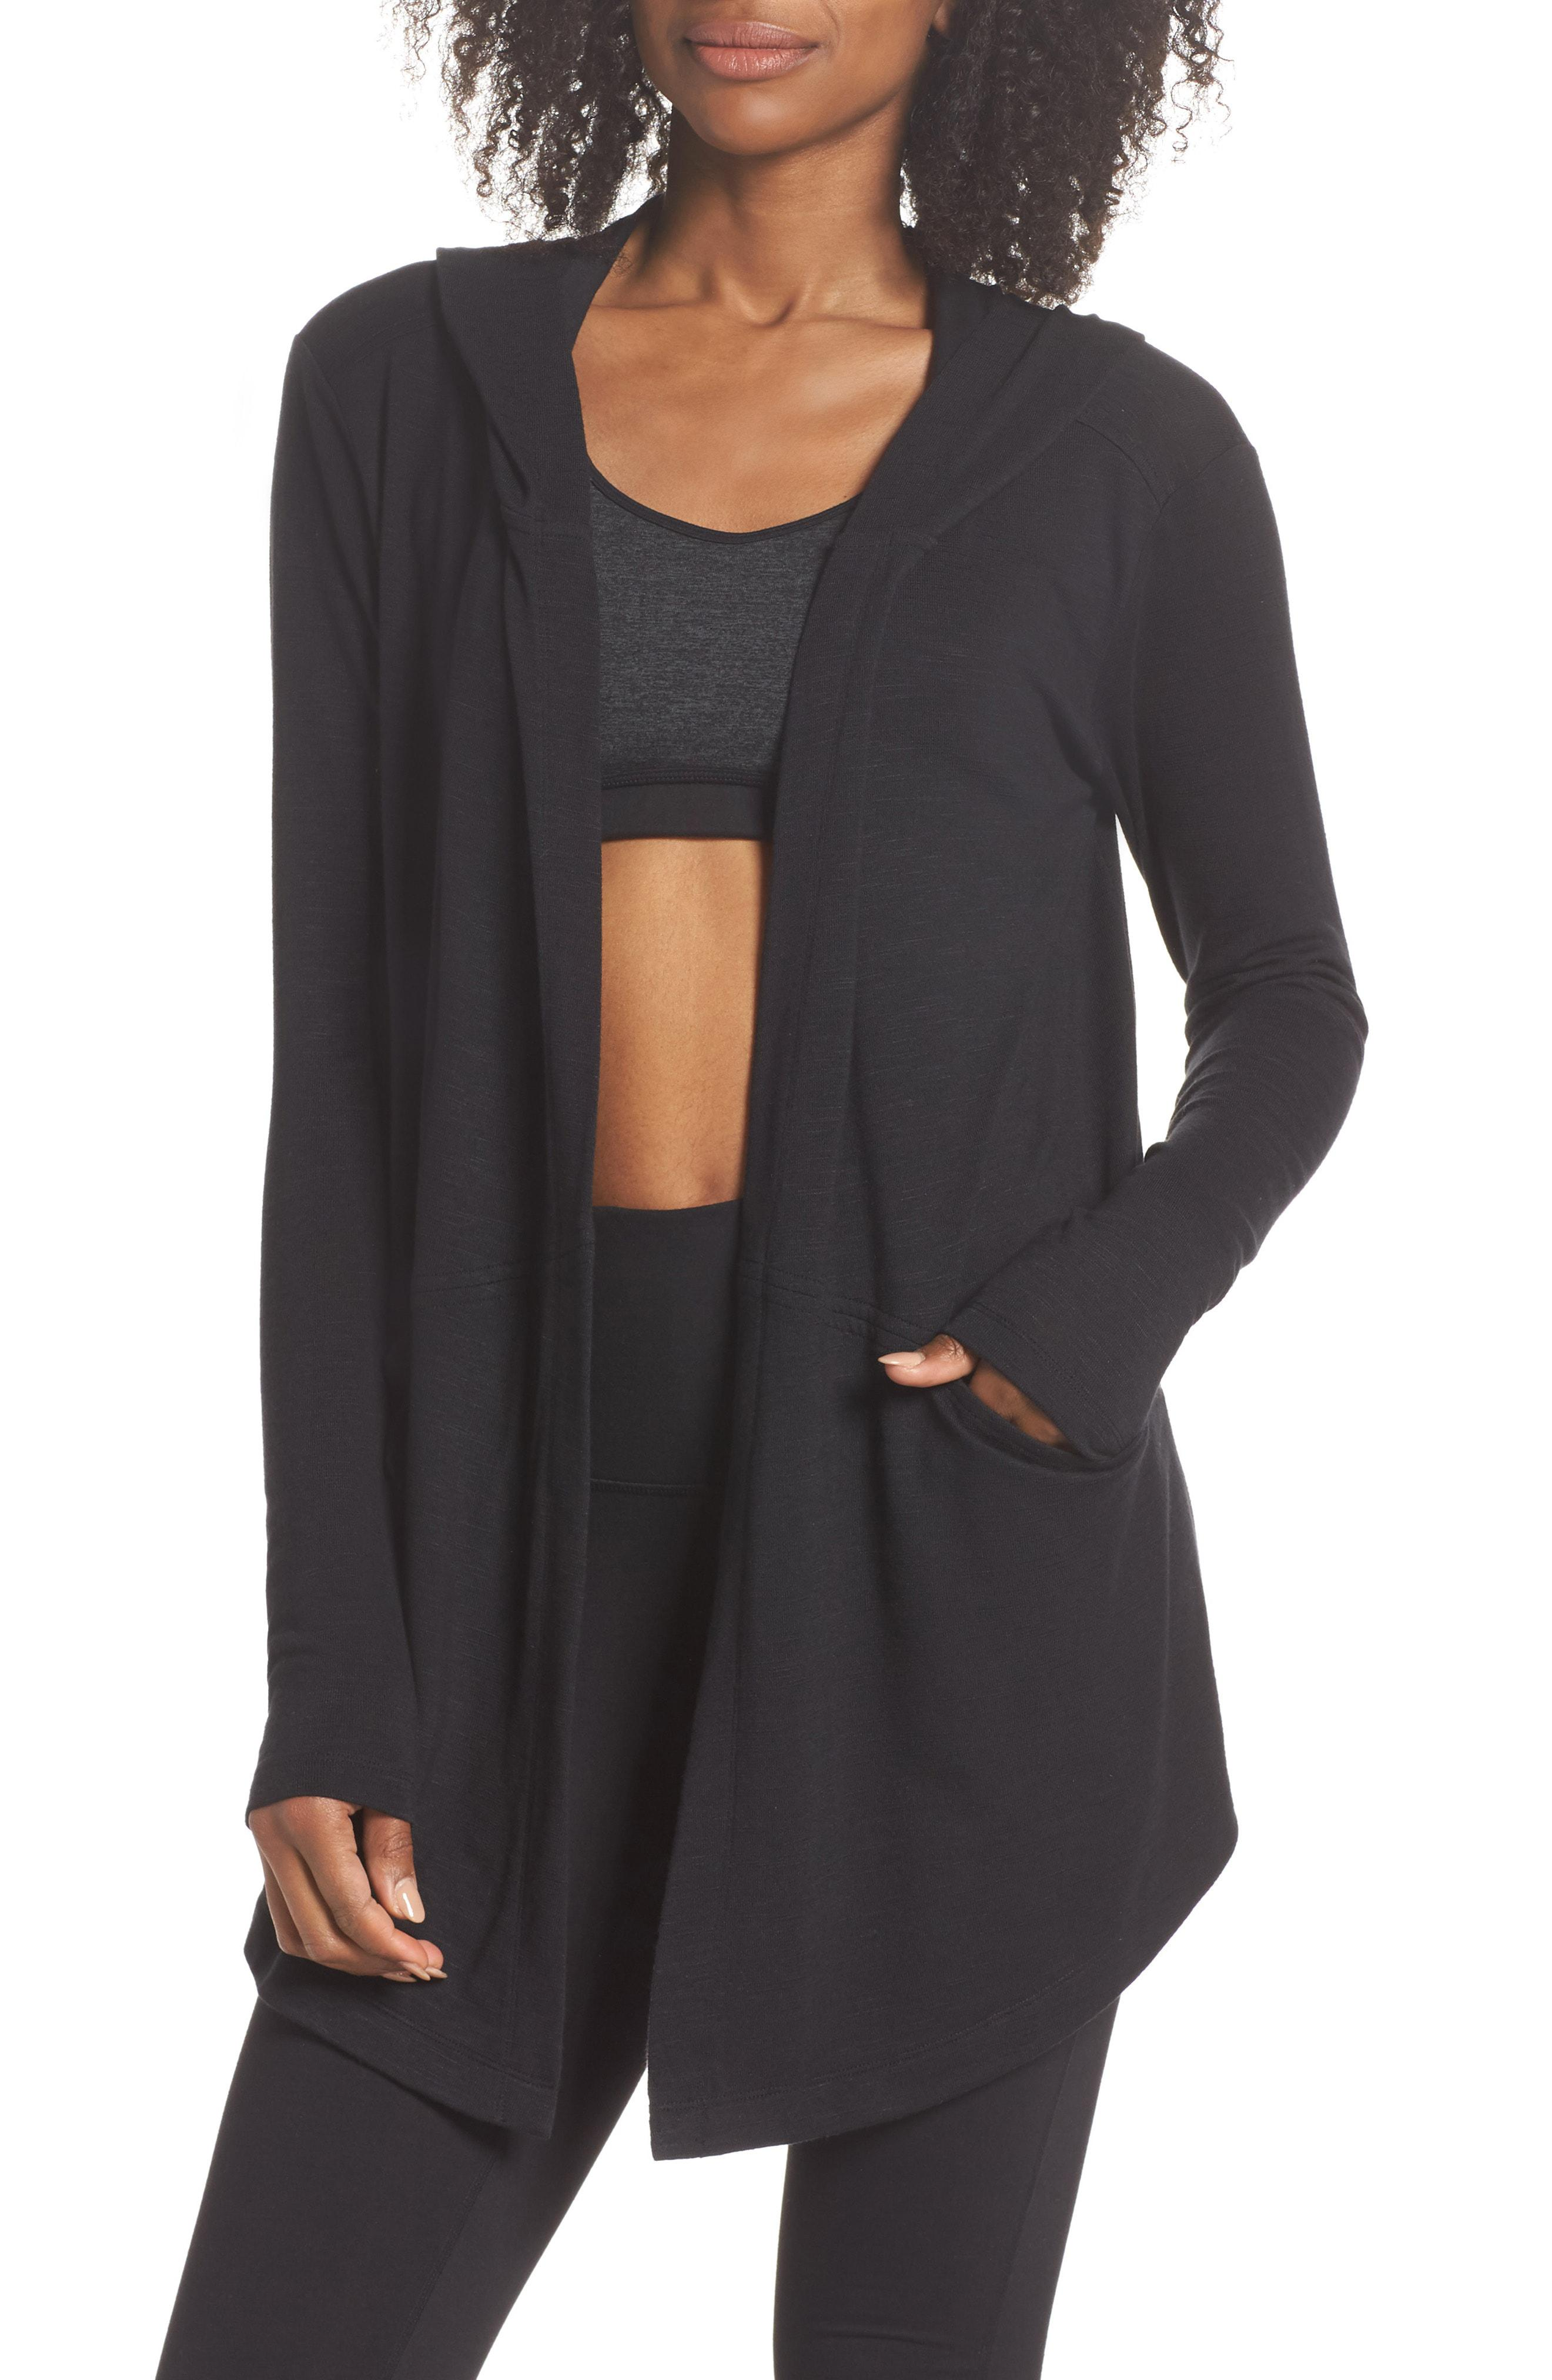 91a09a14db9 Lyst - Zella After Class Hooded Cardigan in Gray